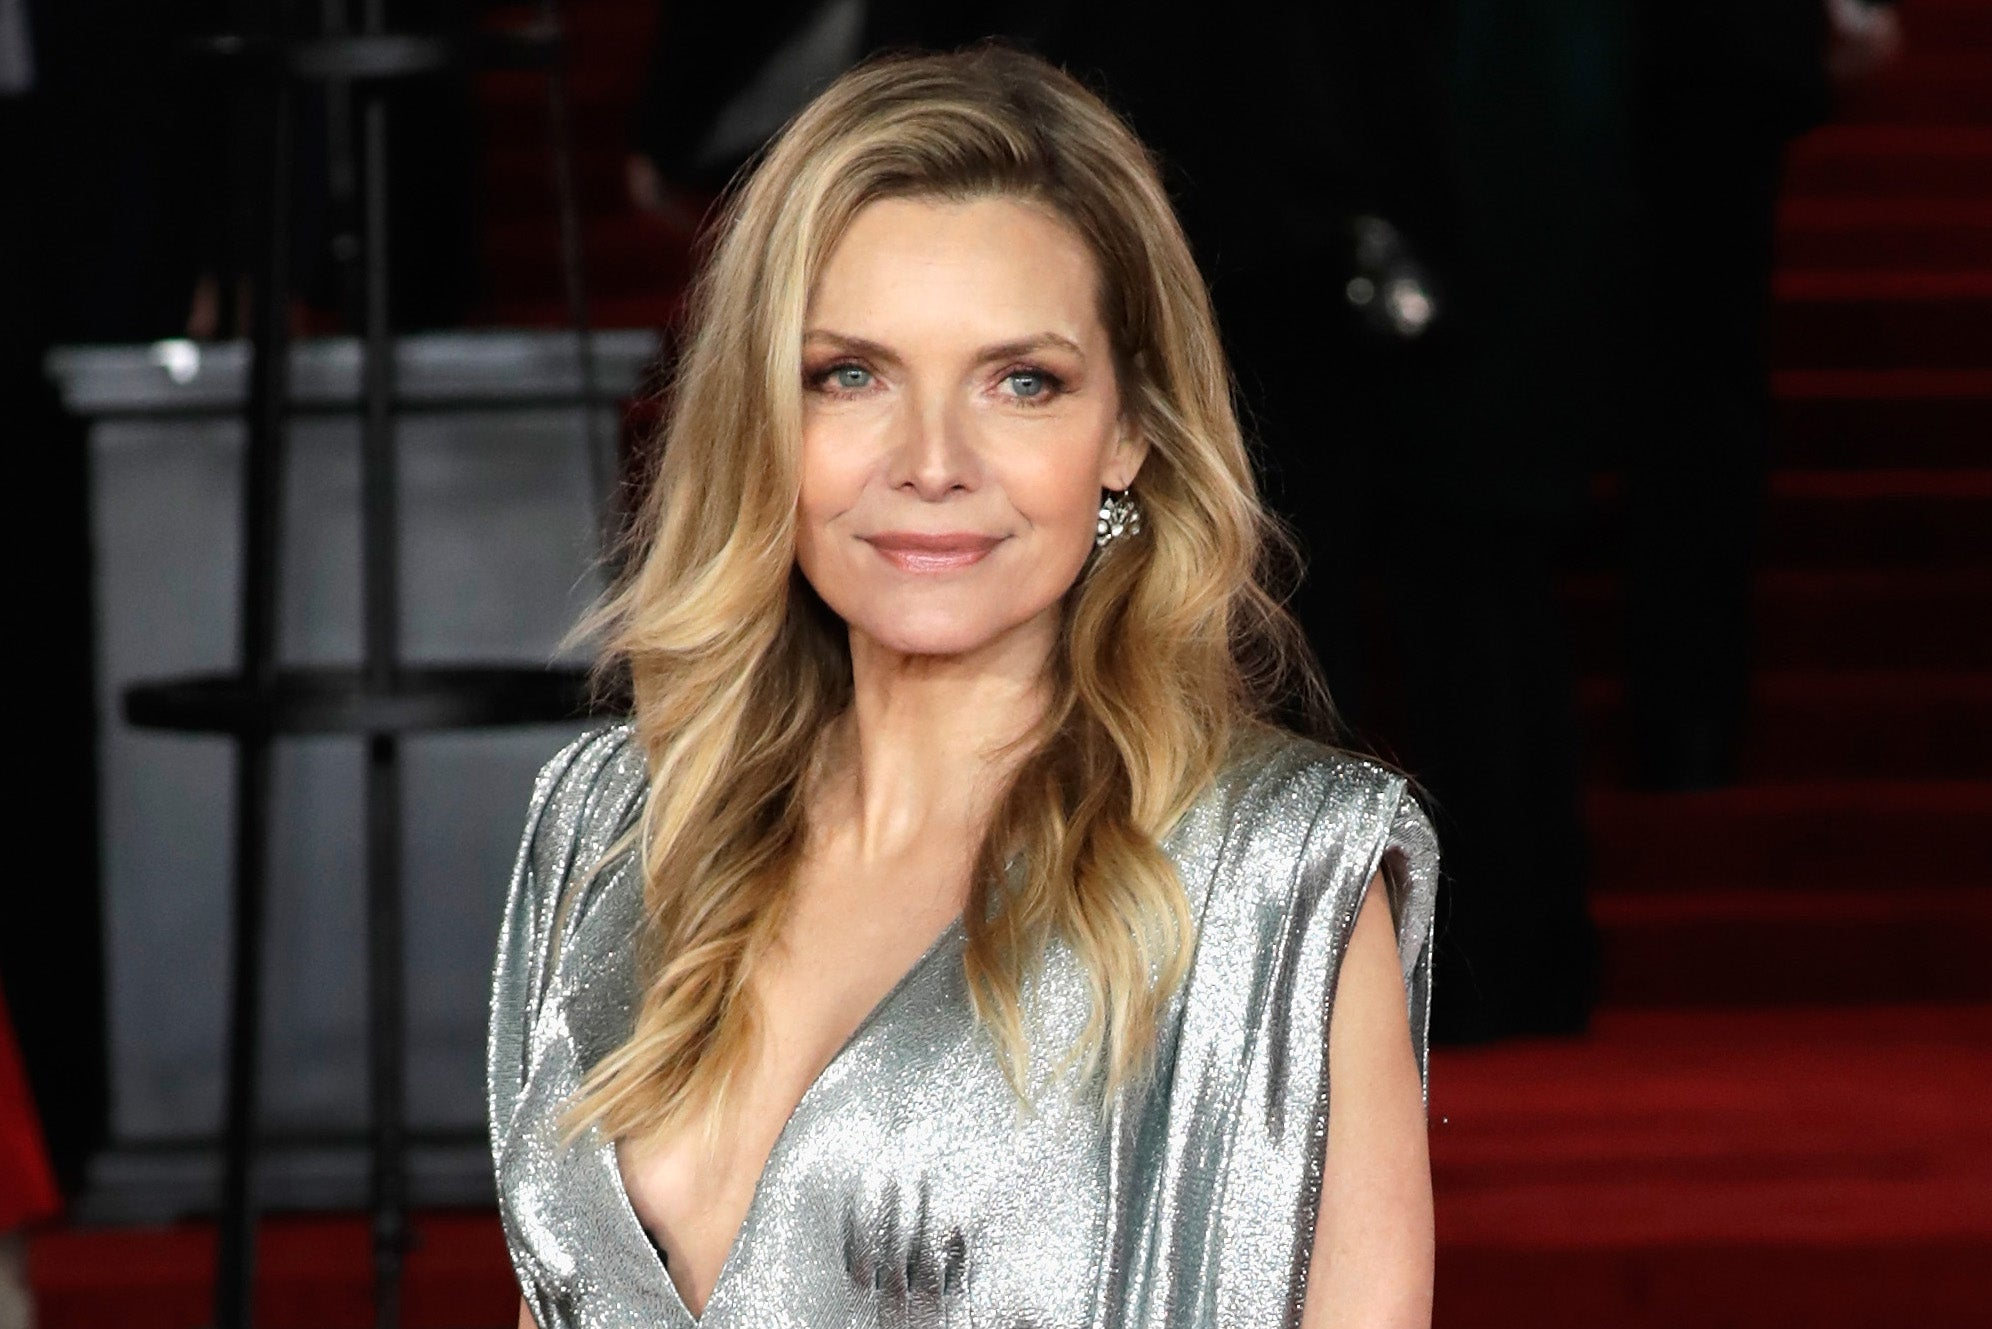 ICloud Michelle Pfeiffer naked (41 foto and video), Topless, Cleavage, Twitter, braless 2019